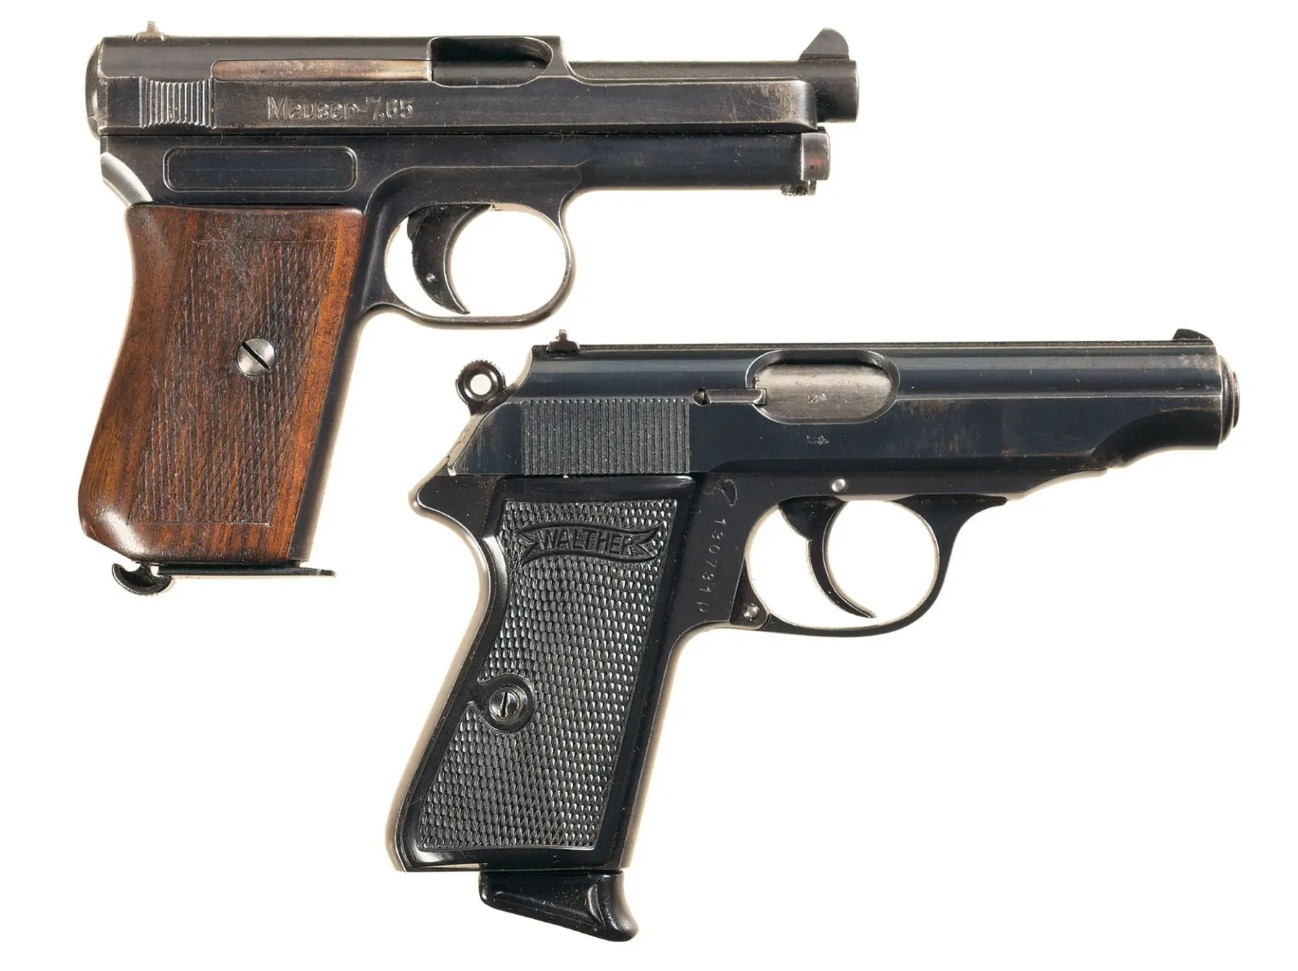 Mauser automatic pistol Walther PPK